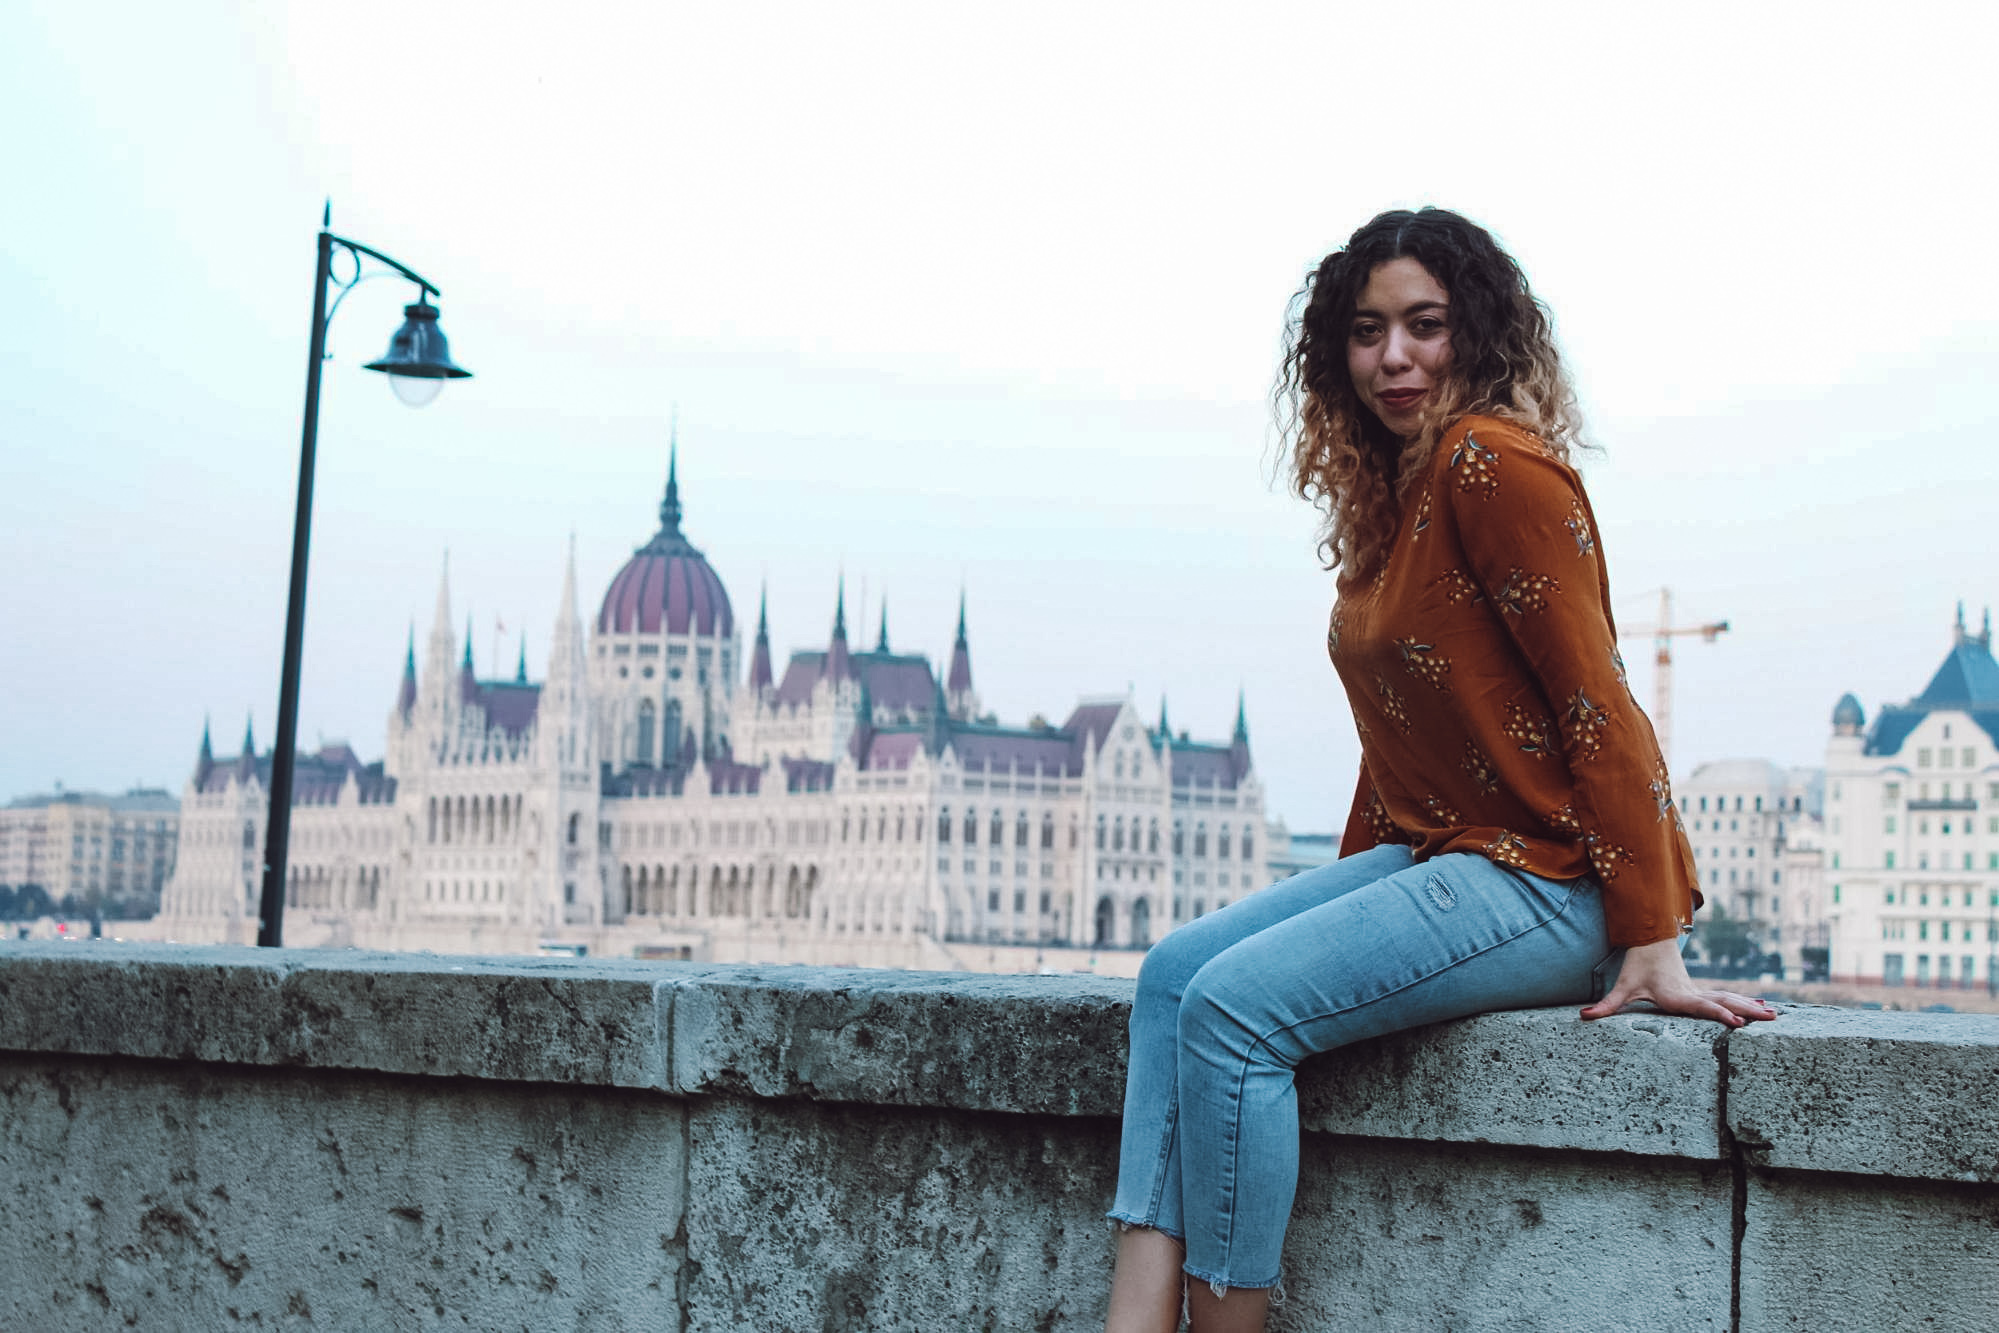 Woman sitting on ledge in Budapest with Parliment building in the background